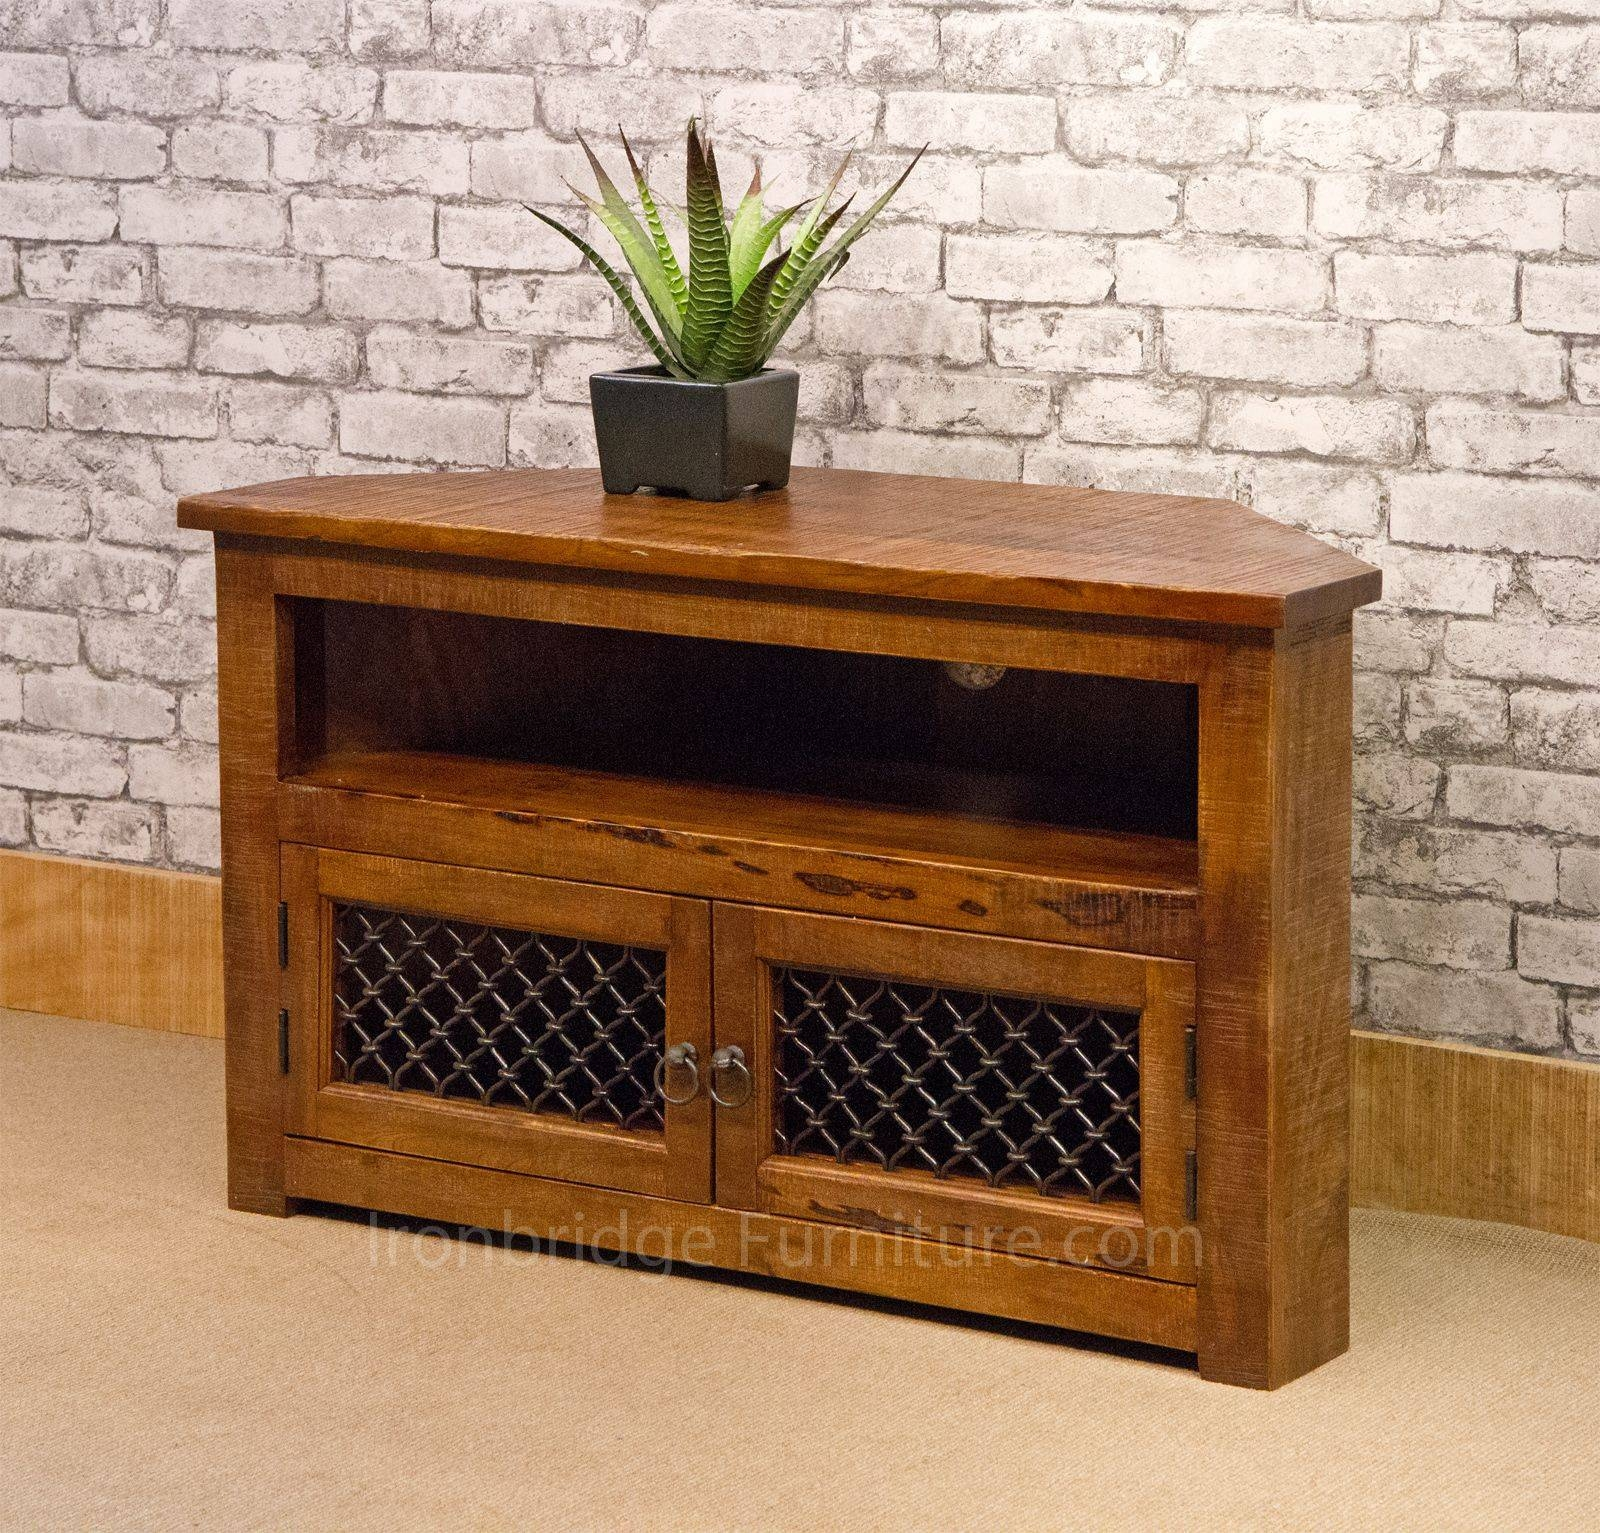 Rf-13 Jali Rustic Farm Corner Tv Stand 100Cm inside 100Cm Tv Stands (Image 6 of 15)